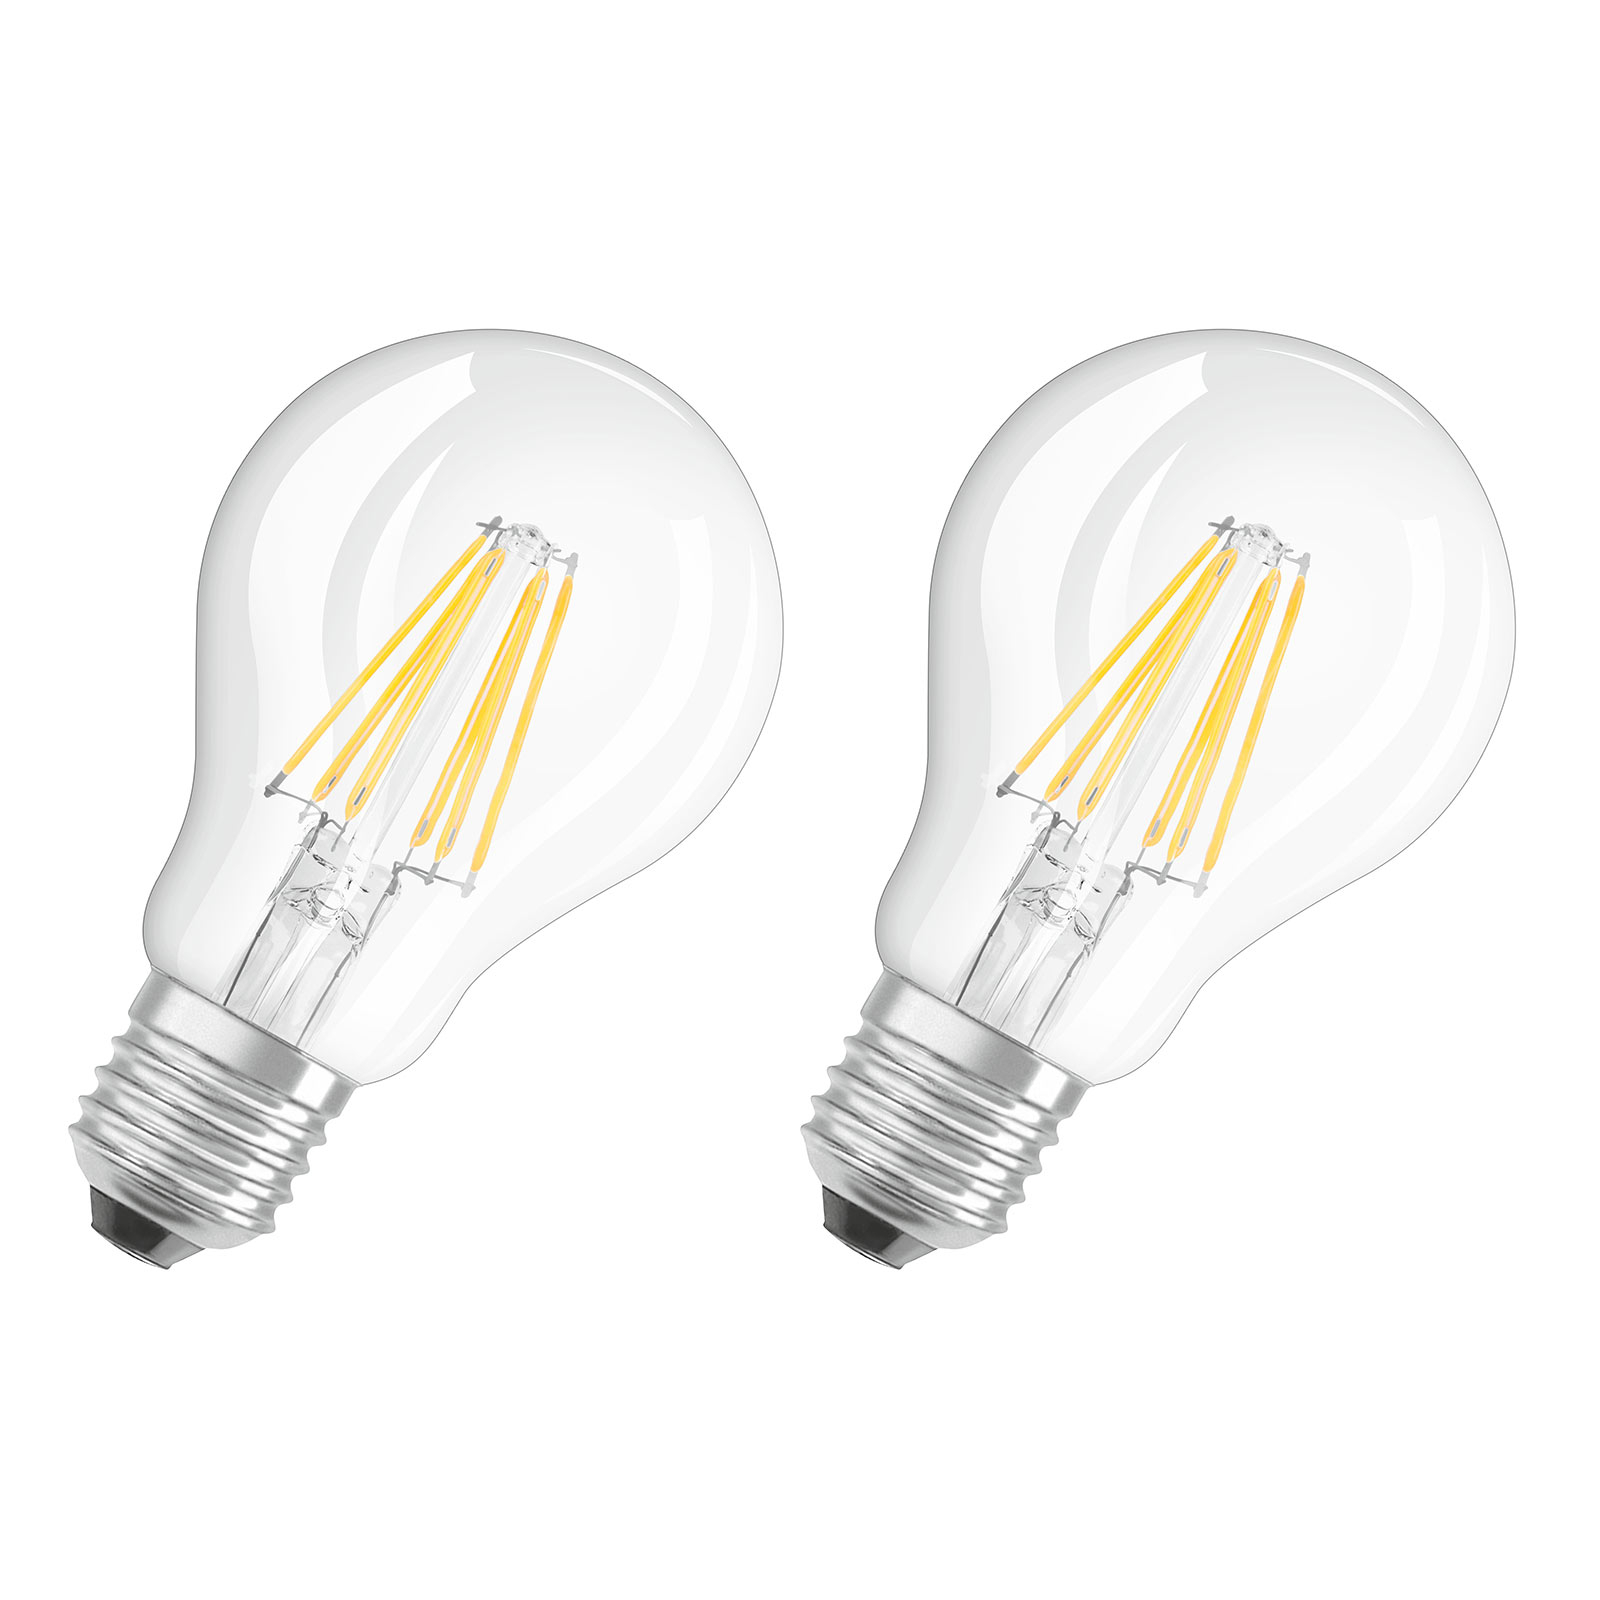 E27 7W 827 Filament-LED-Lampe 2er Set